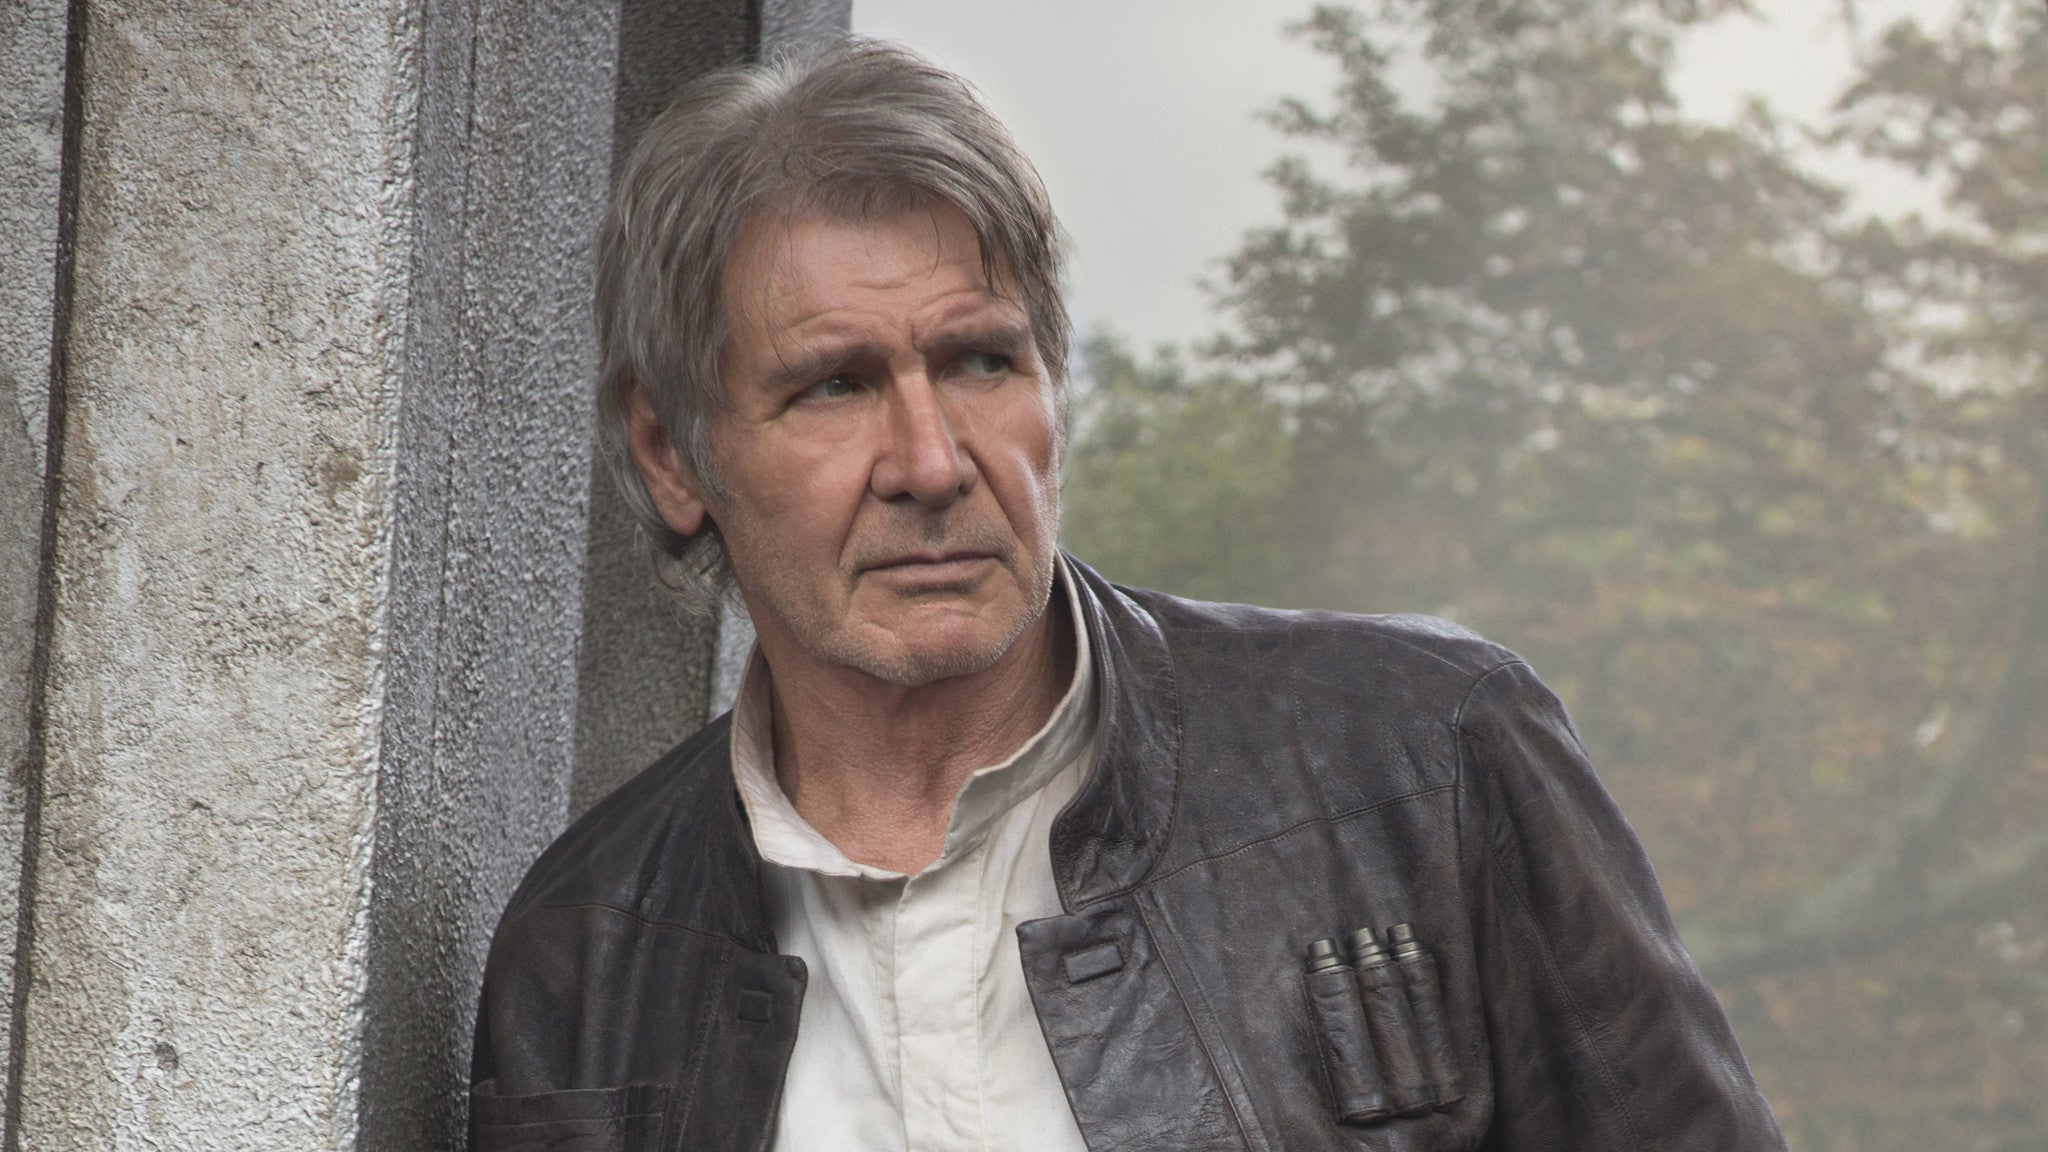 Though Departed, Han Solo Still Plays A Crucial Role In The Last Jedi